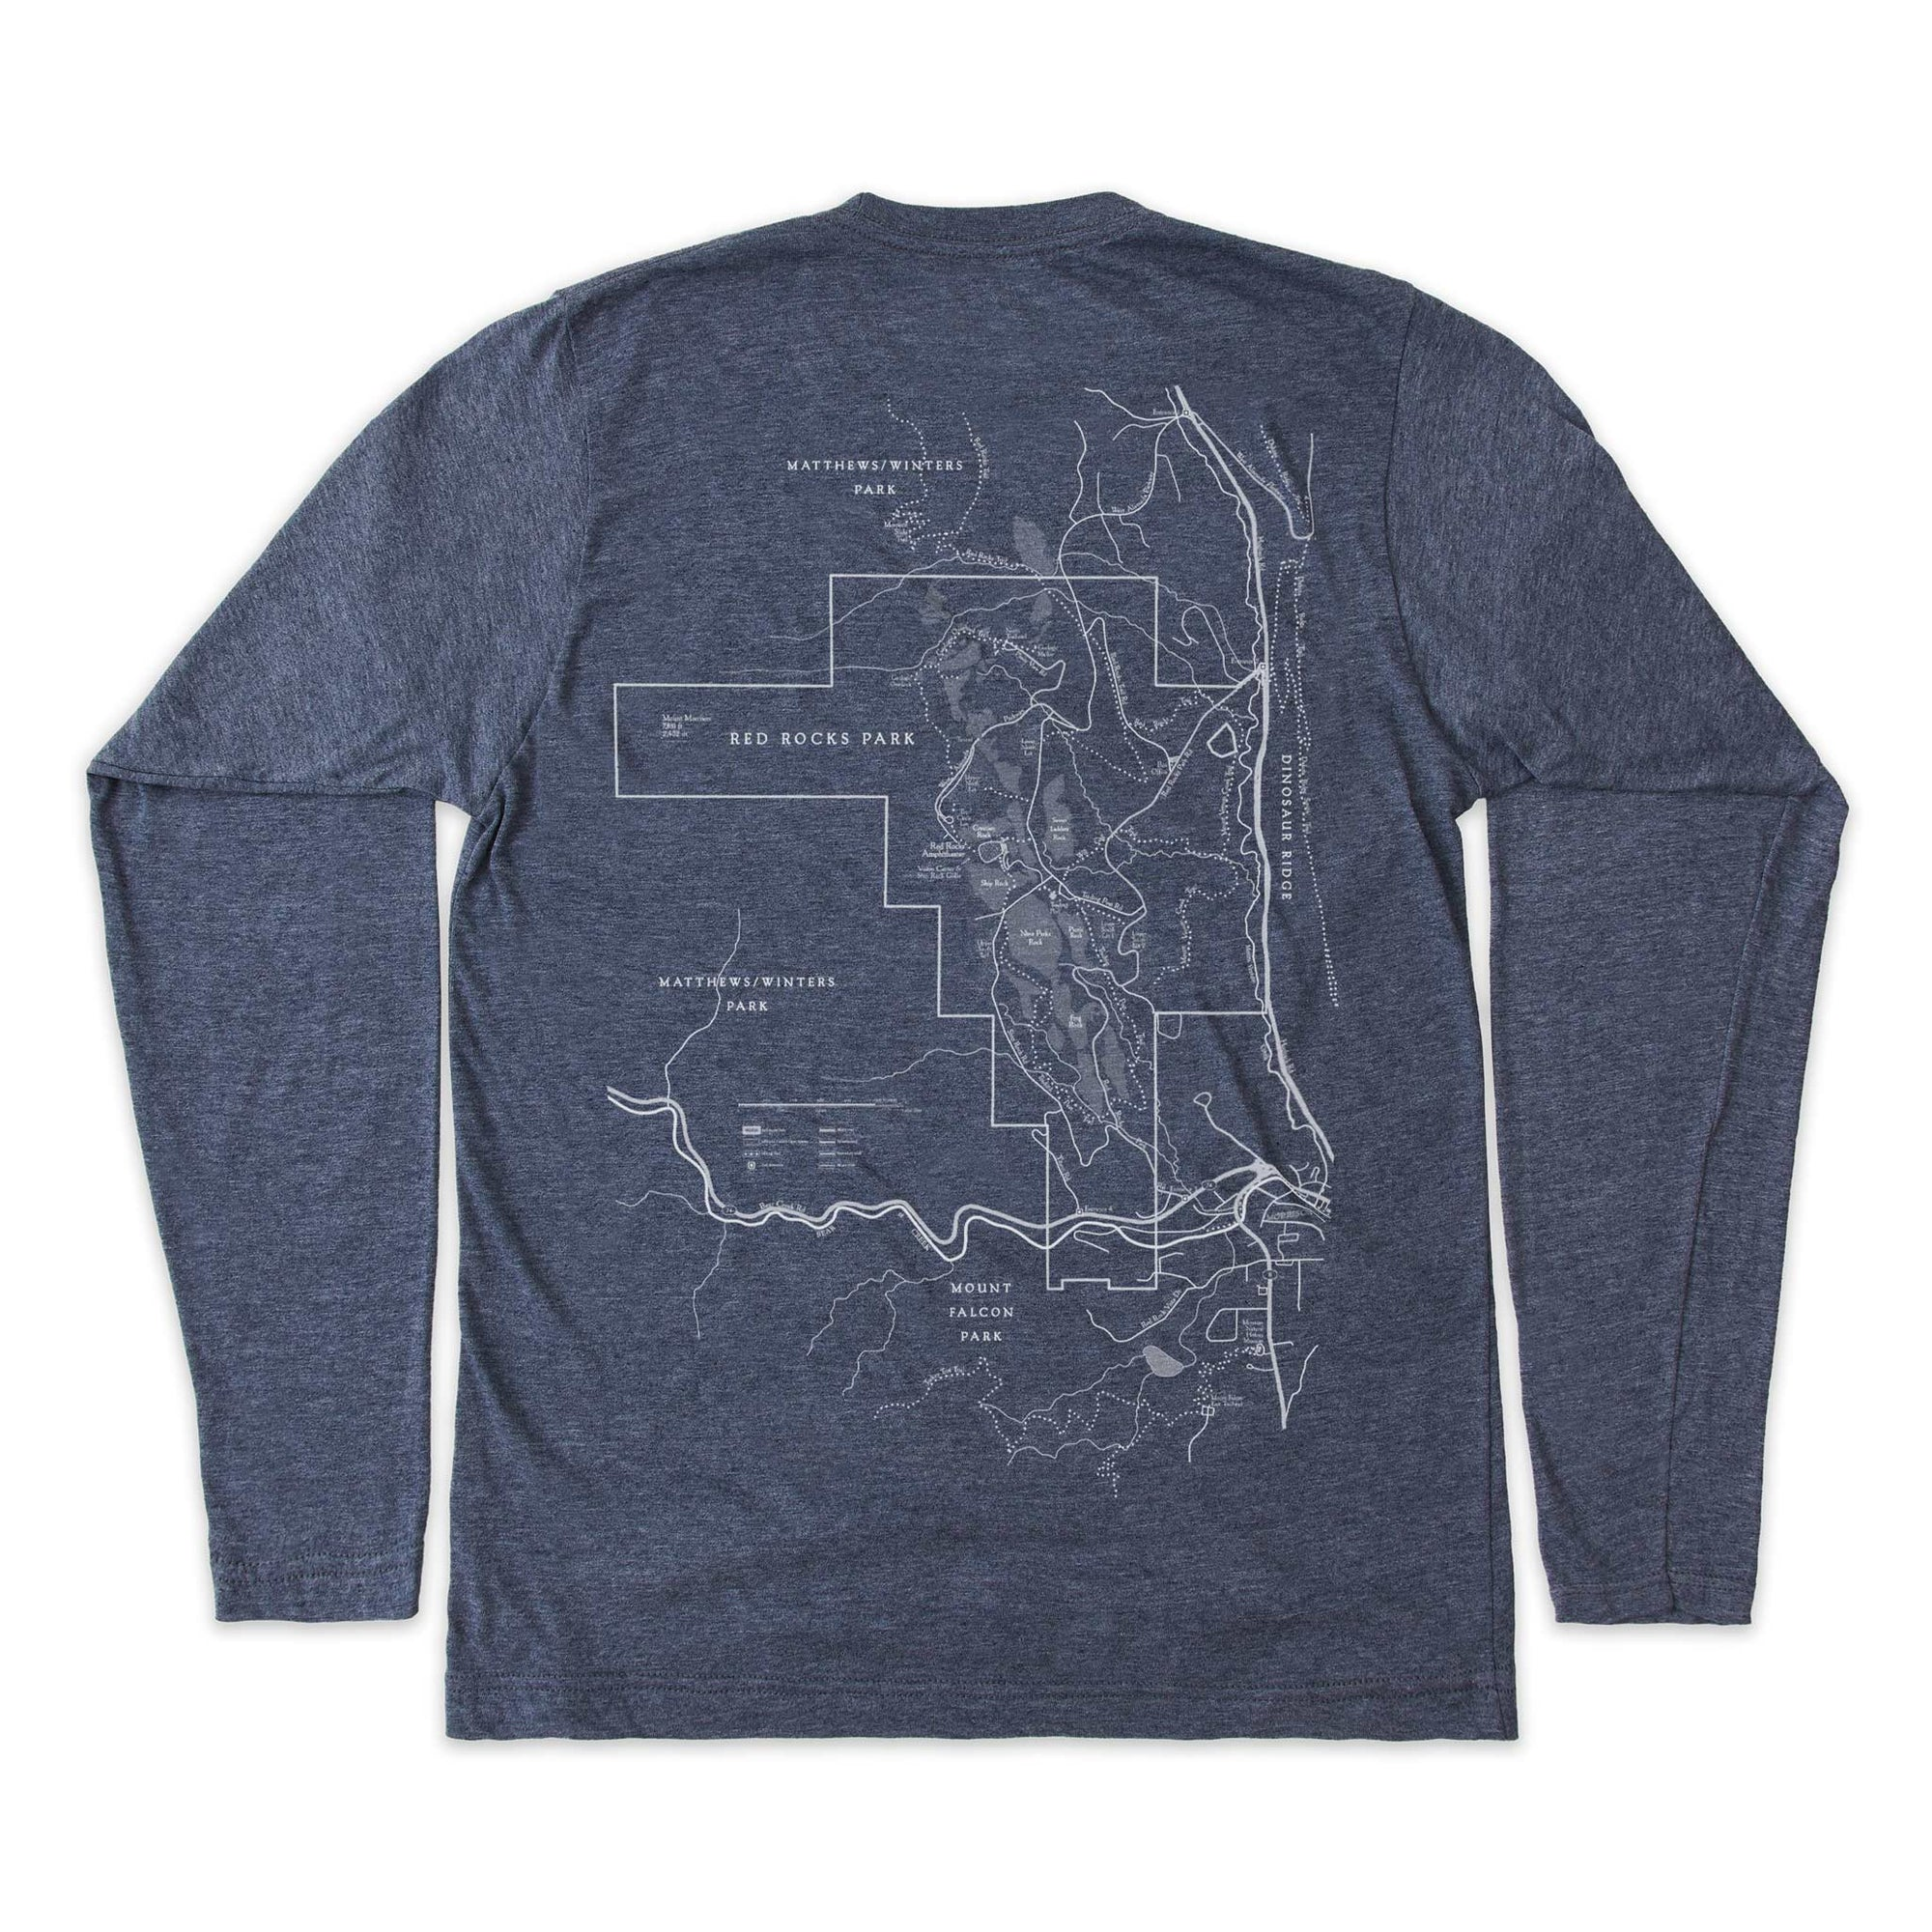 Red Rocks Park Map Unisex Tee